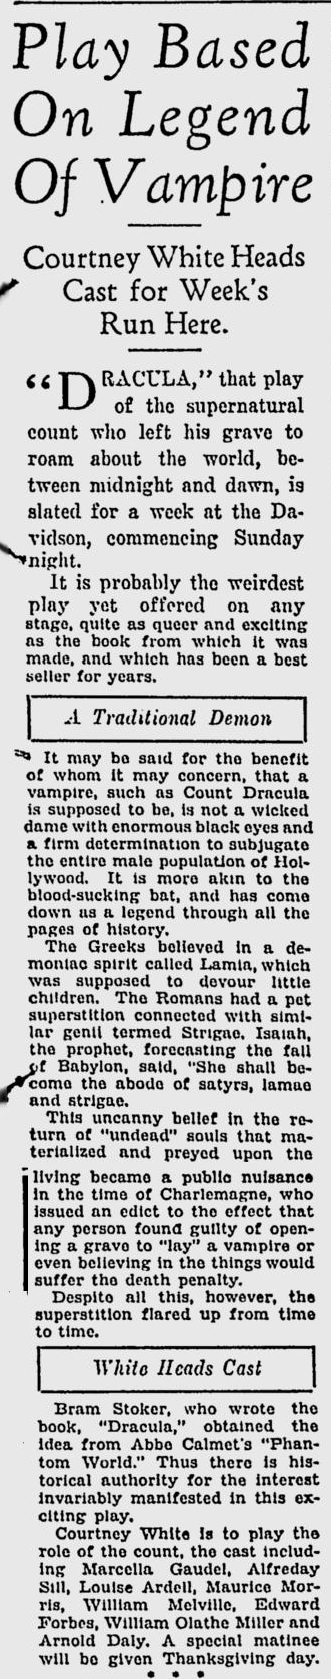 Courtney White Milwaukee Sentinel, November 23, 1930 3